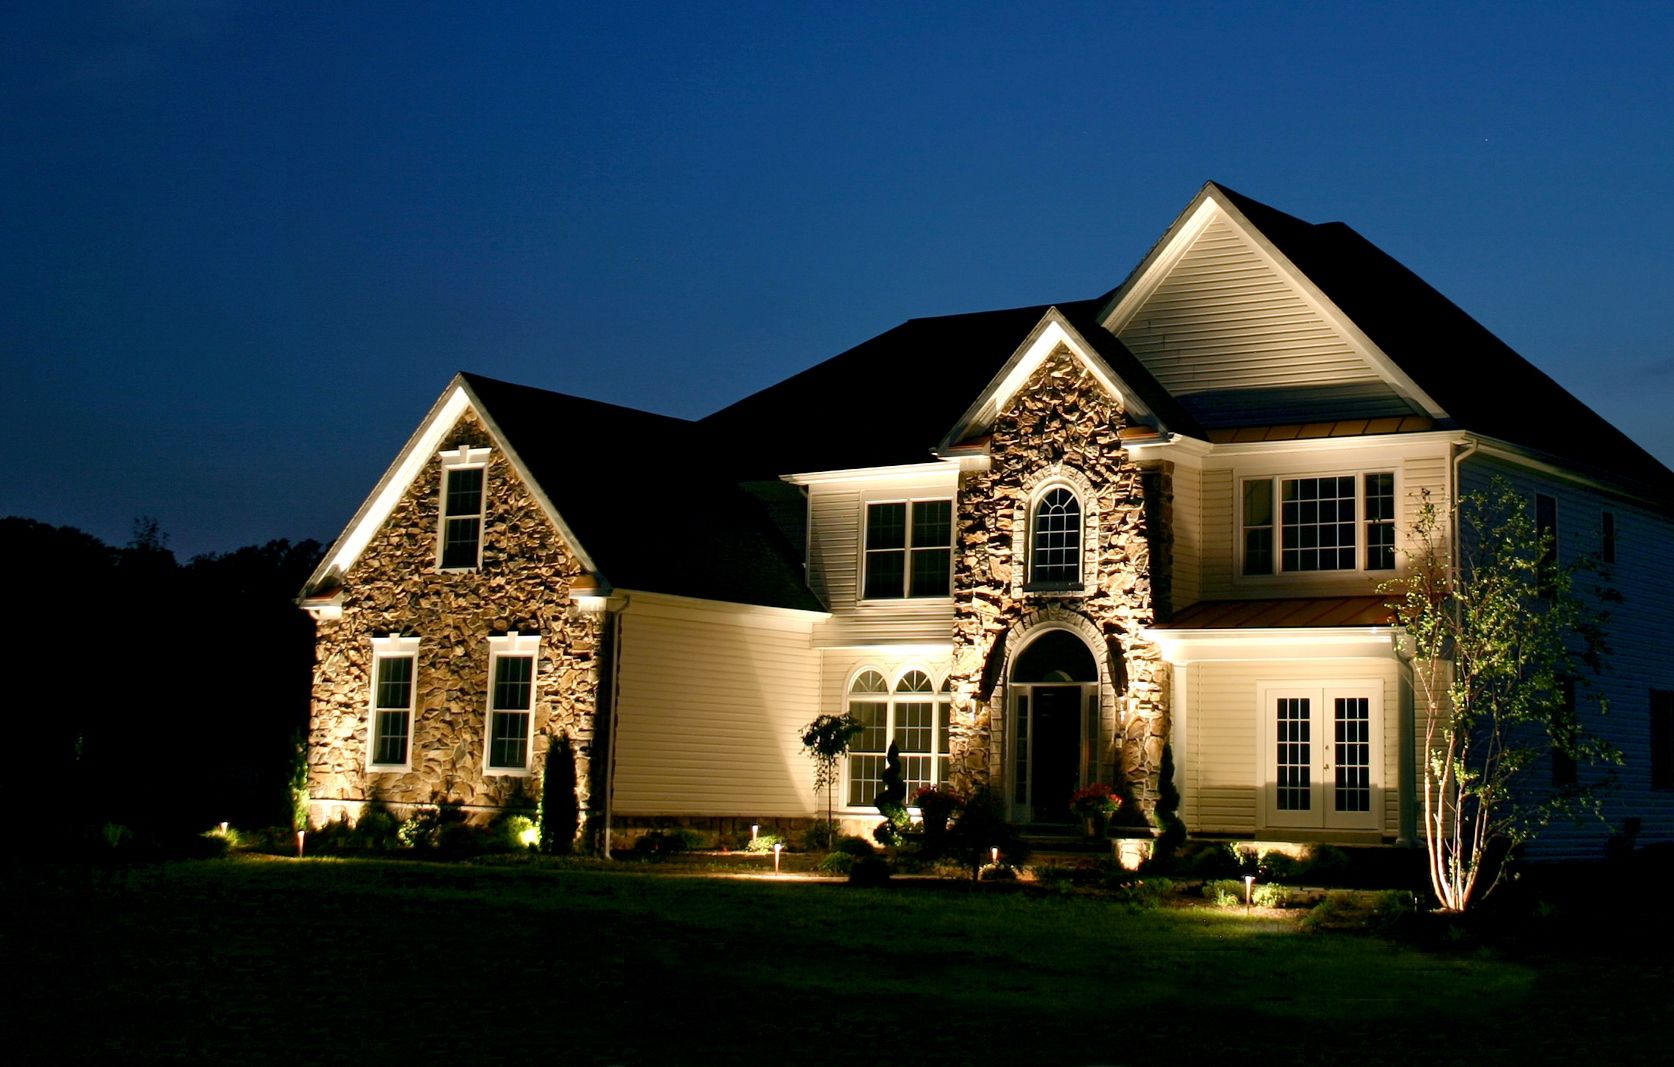 Tips for Choosing and Installing Landscape Lighting